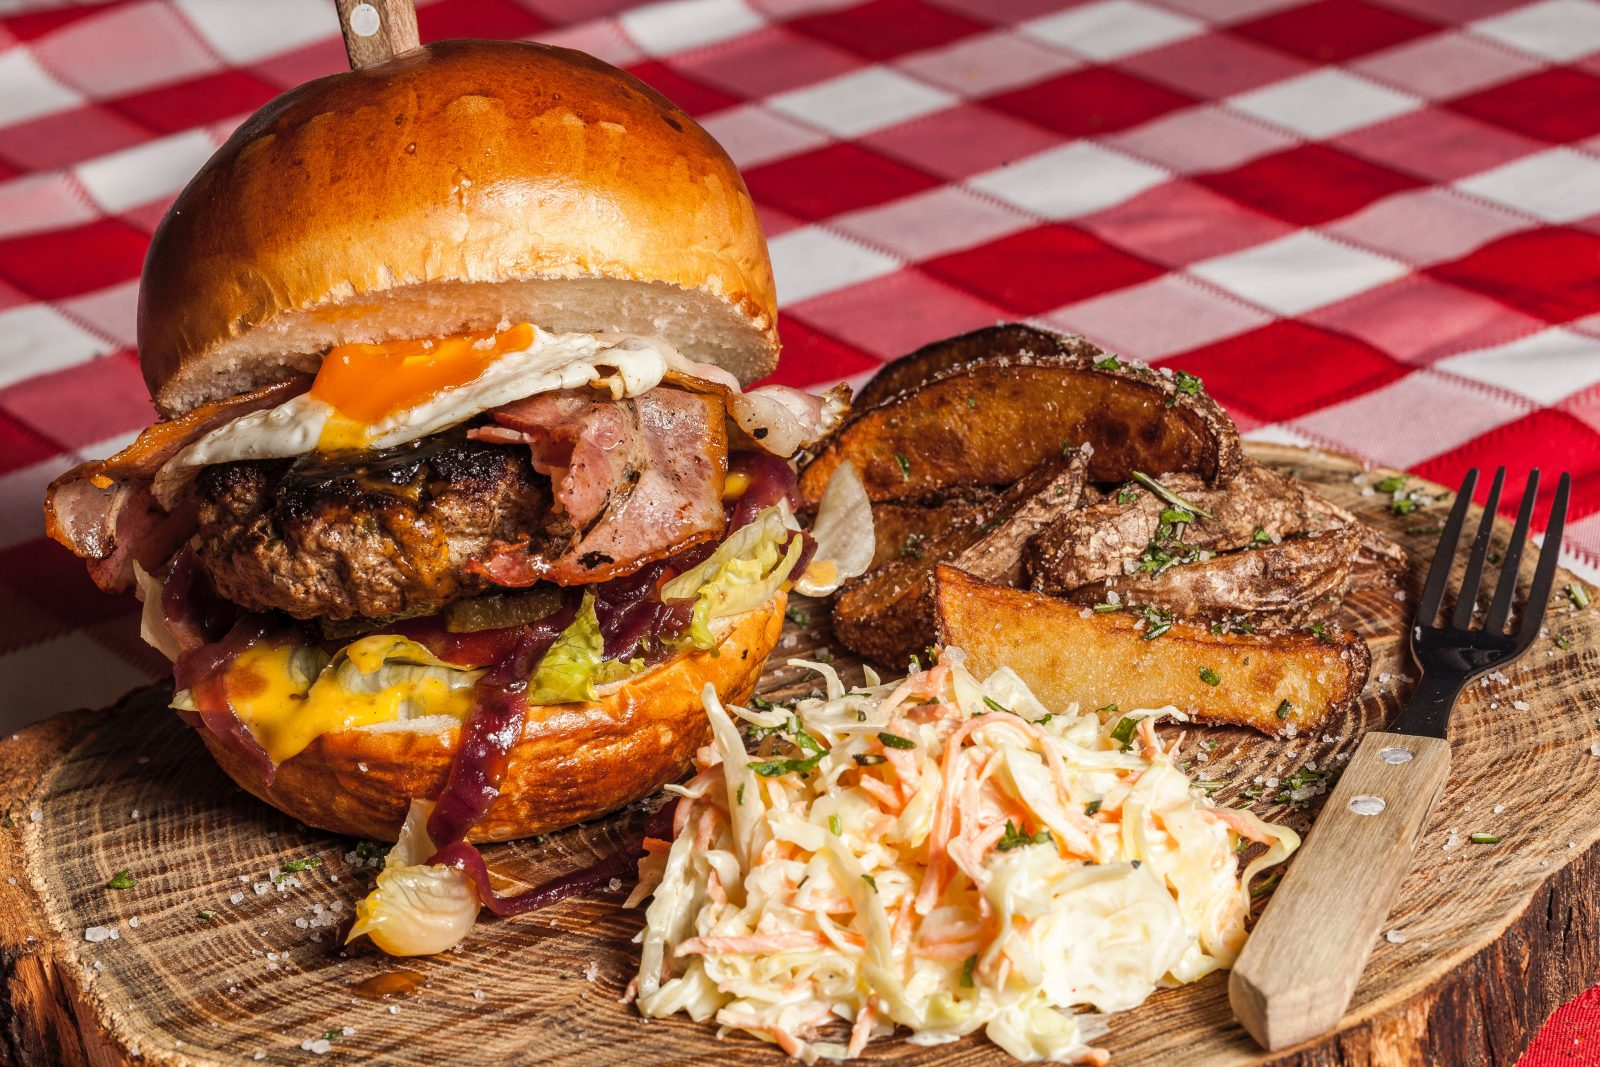 Food to try in Australia: Aussie burgers tend to be messy but oh so good